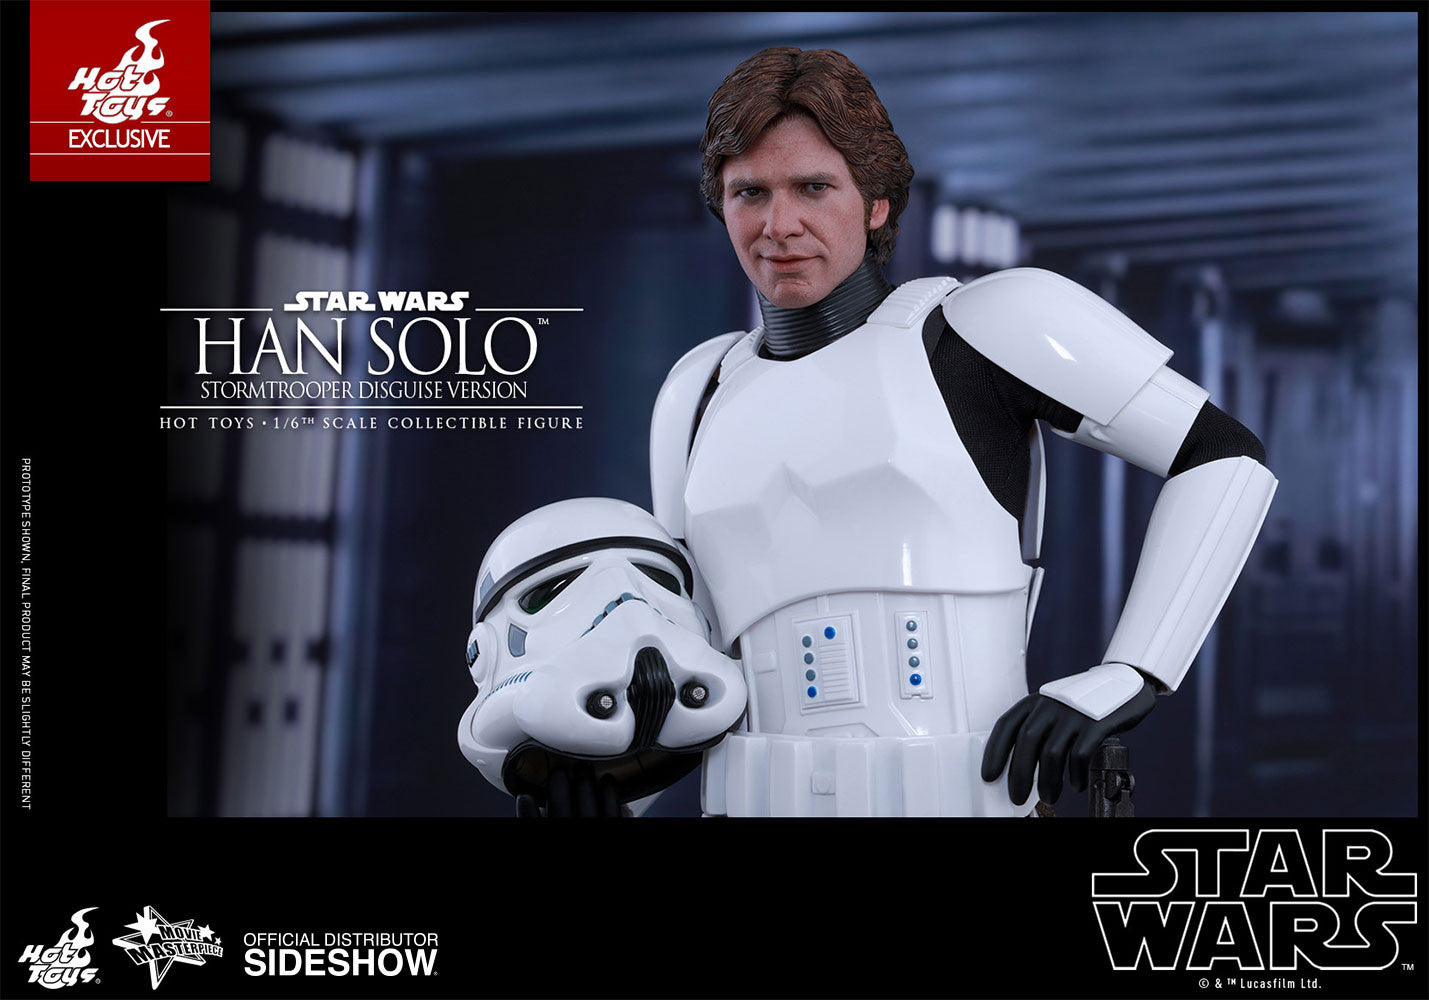 Hot toys Han Solo (Stormtrooper Disguise Version)